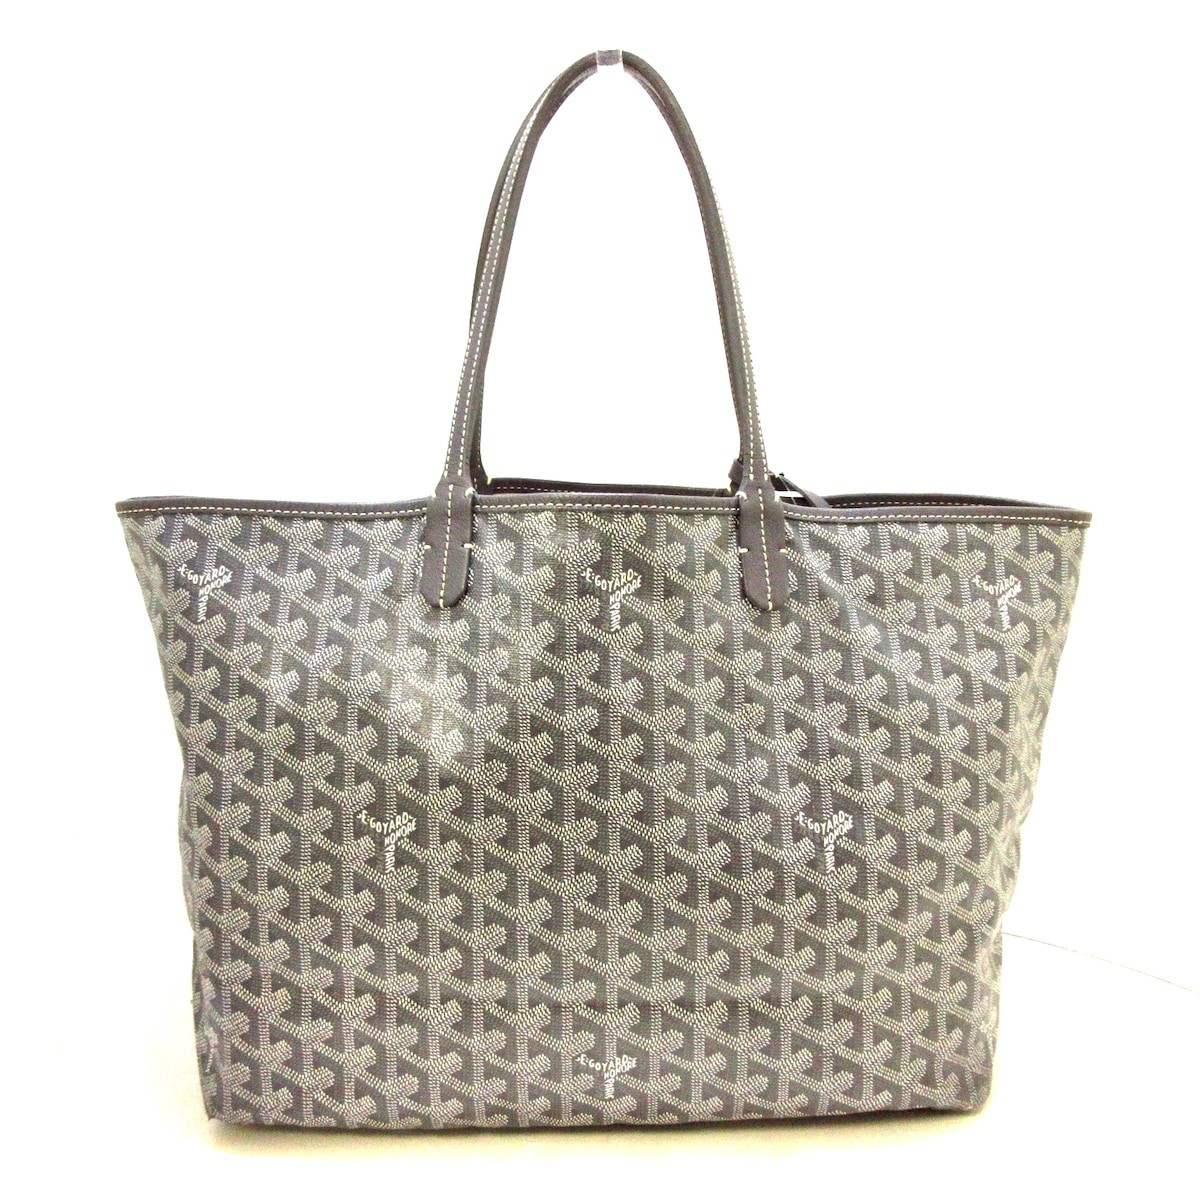 Secondhand GOYARD tote bag